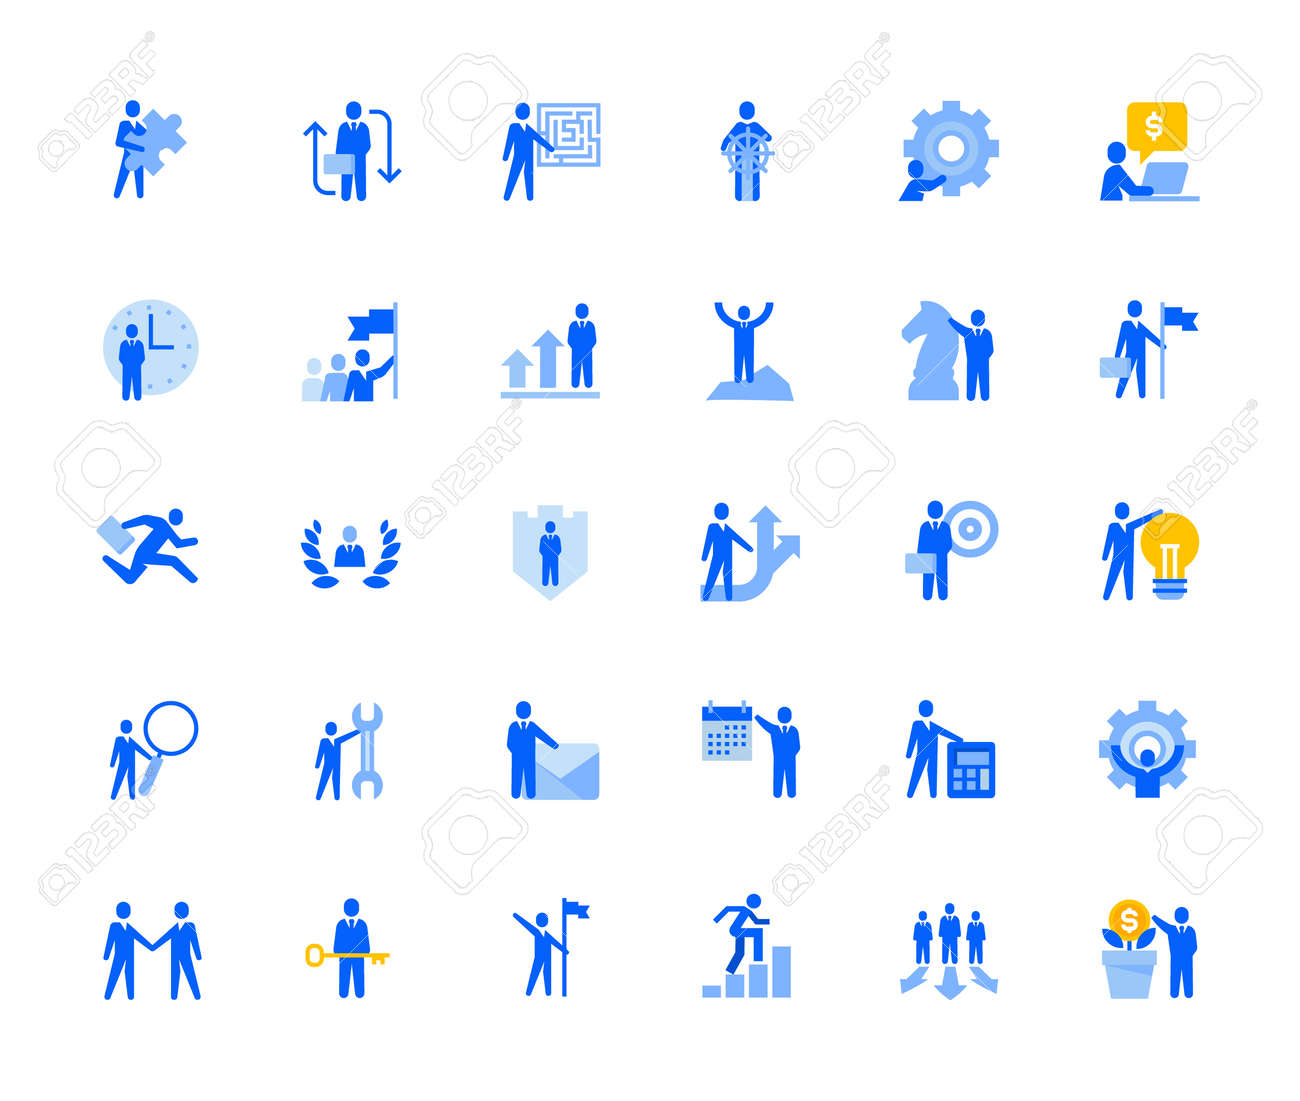 Business management icons set for personal and business use. - 168285556